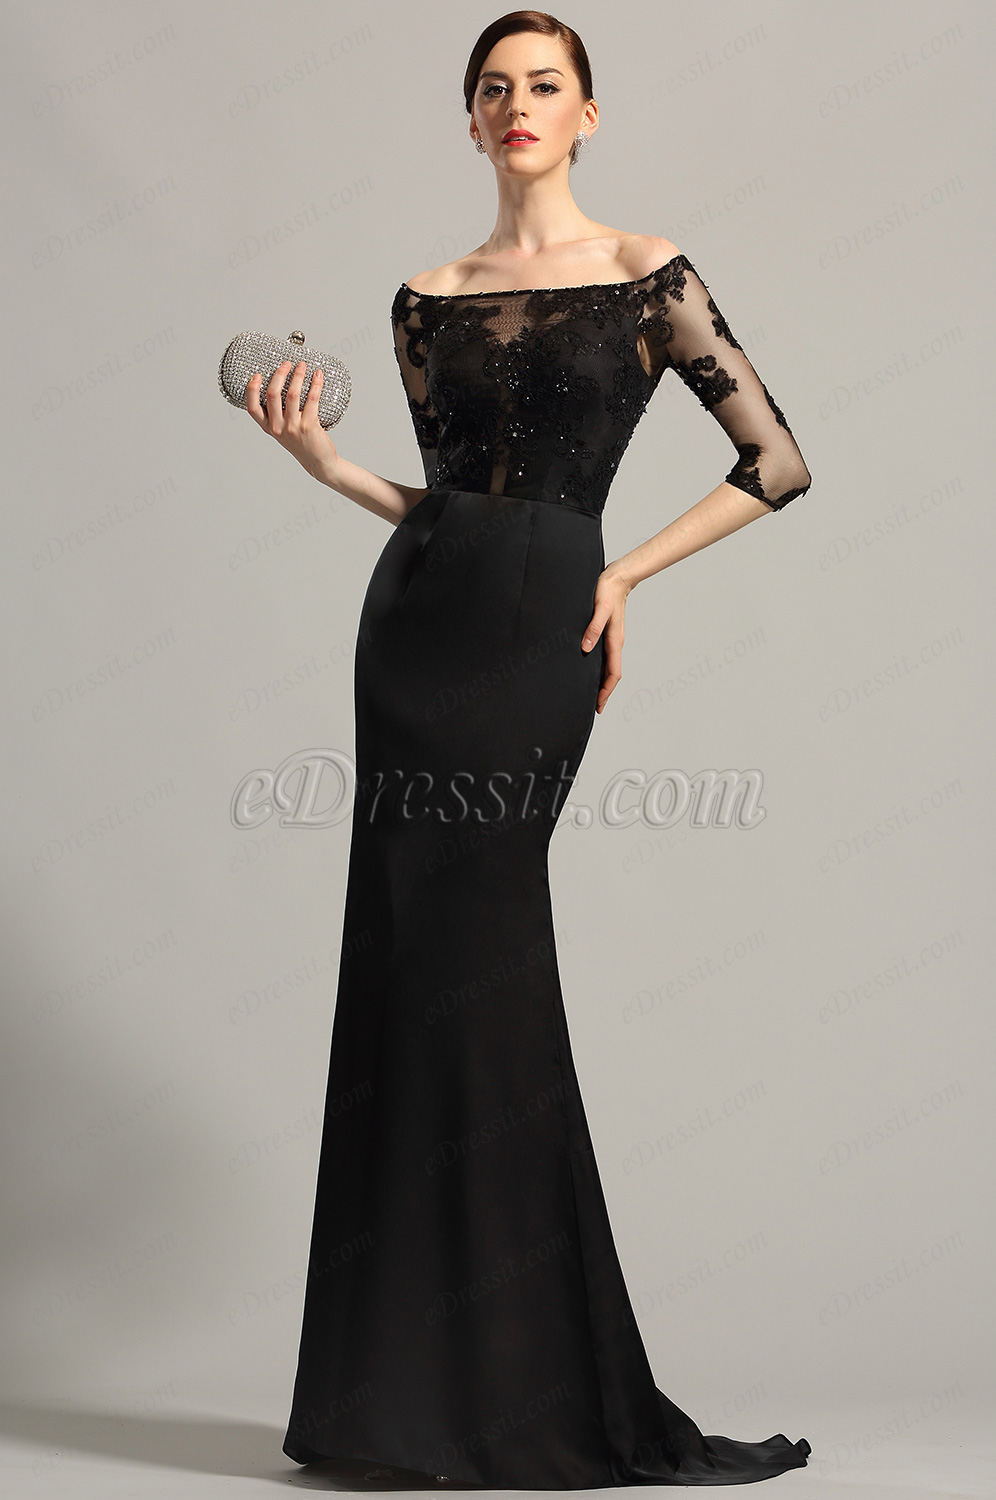 SIMPLE ELEGANCE: Affordable Prom Dresses-Black Collection